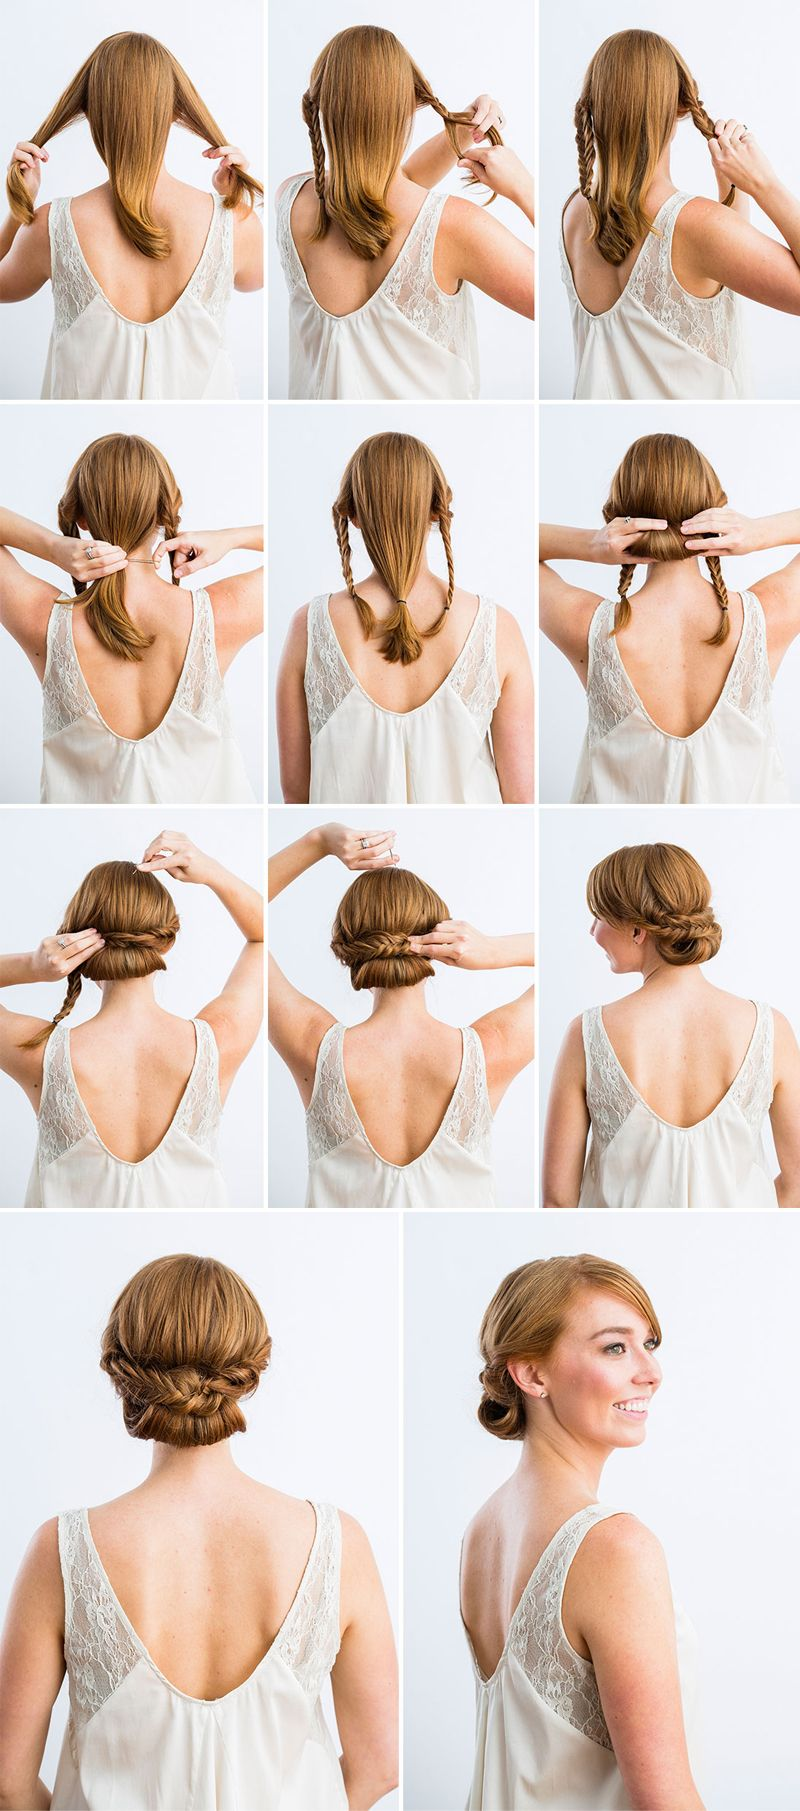 10 Best DIY Wedding Hairstyles with Tutorials | Diy wedding hair ...